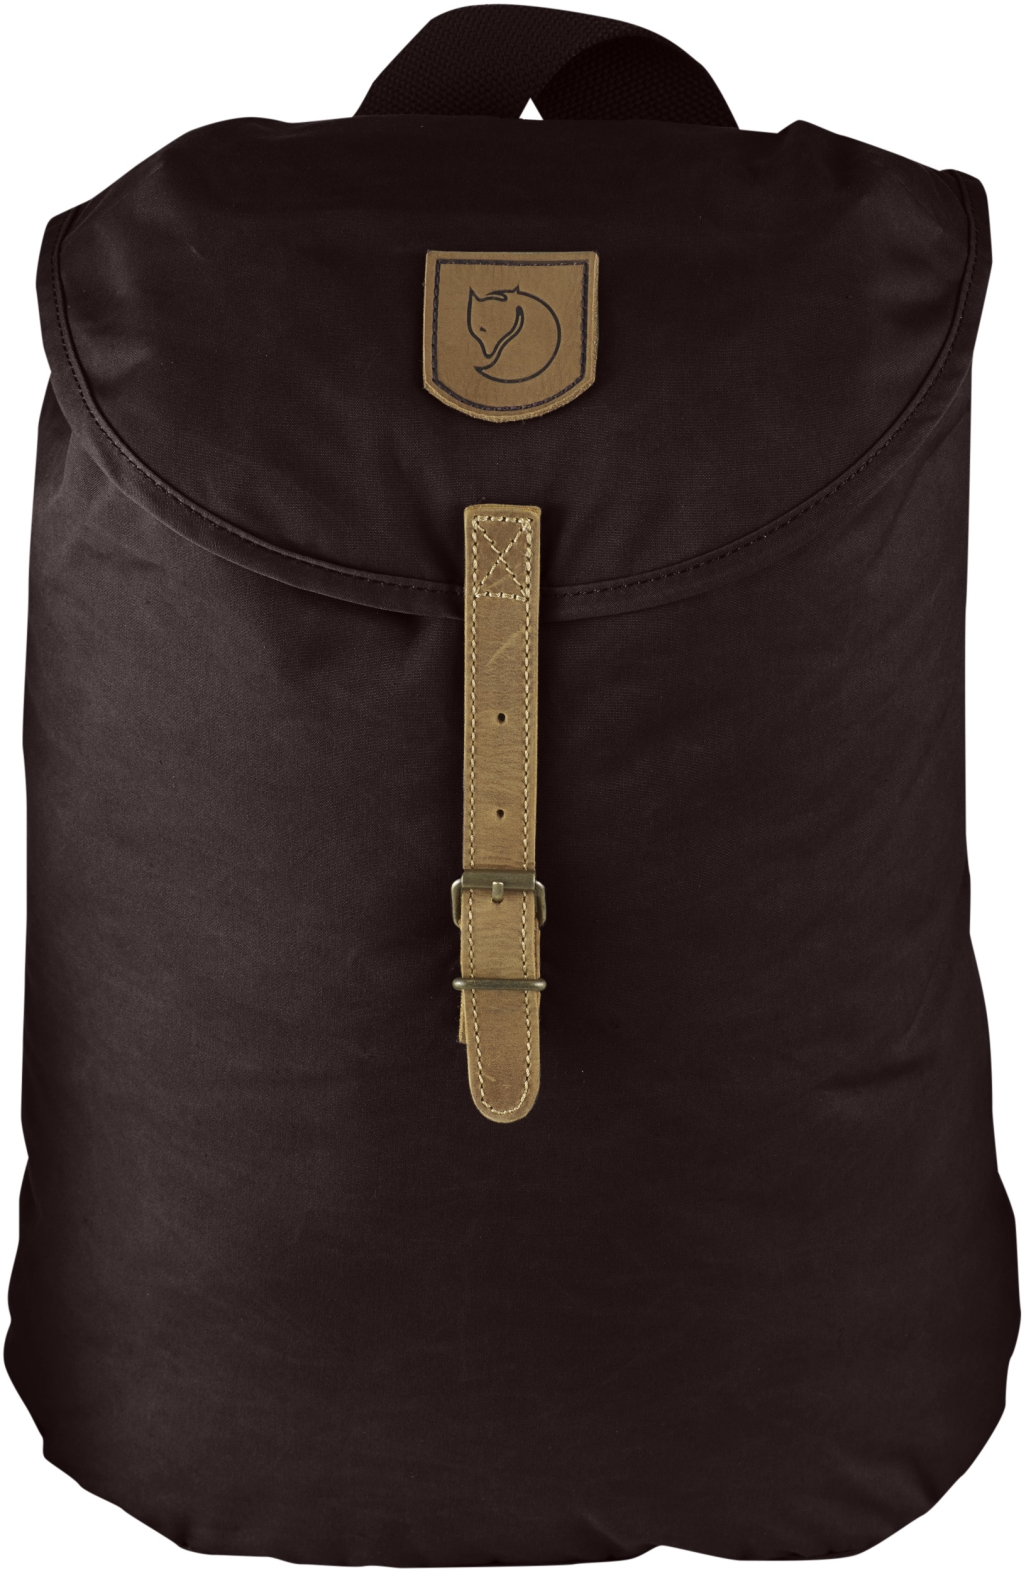 FjallRaven Greenland Backpack Small Hickory Brown-30